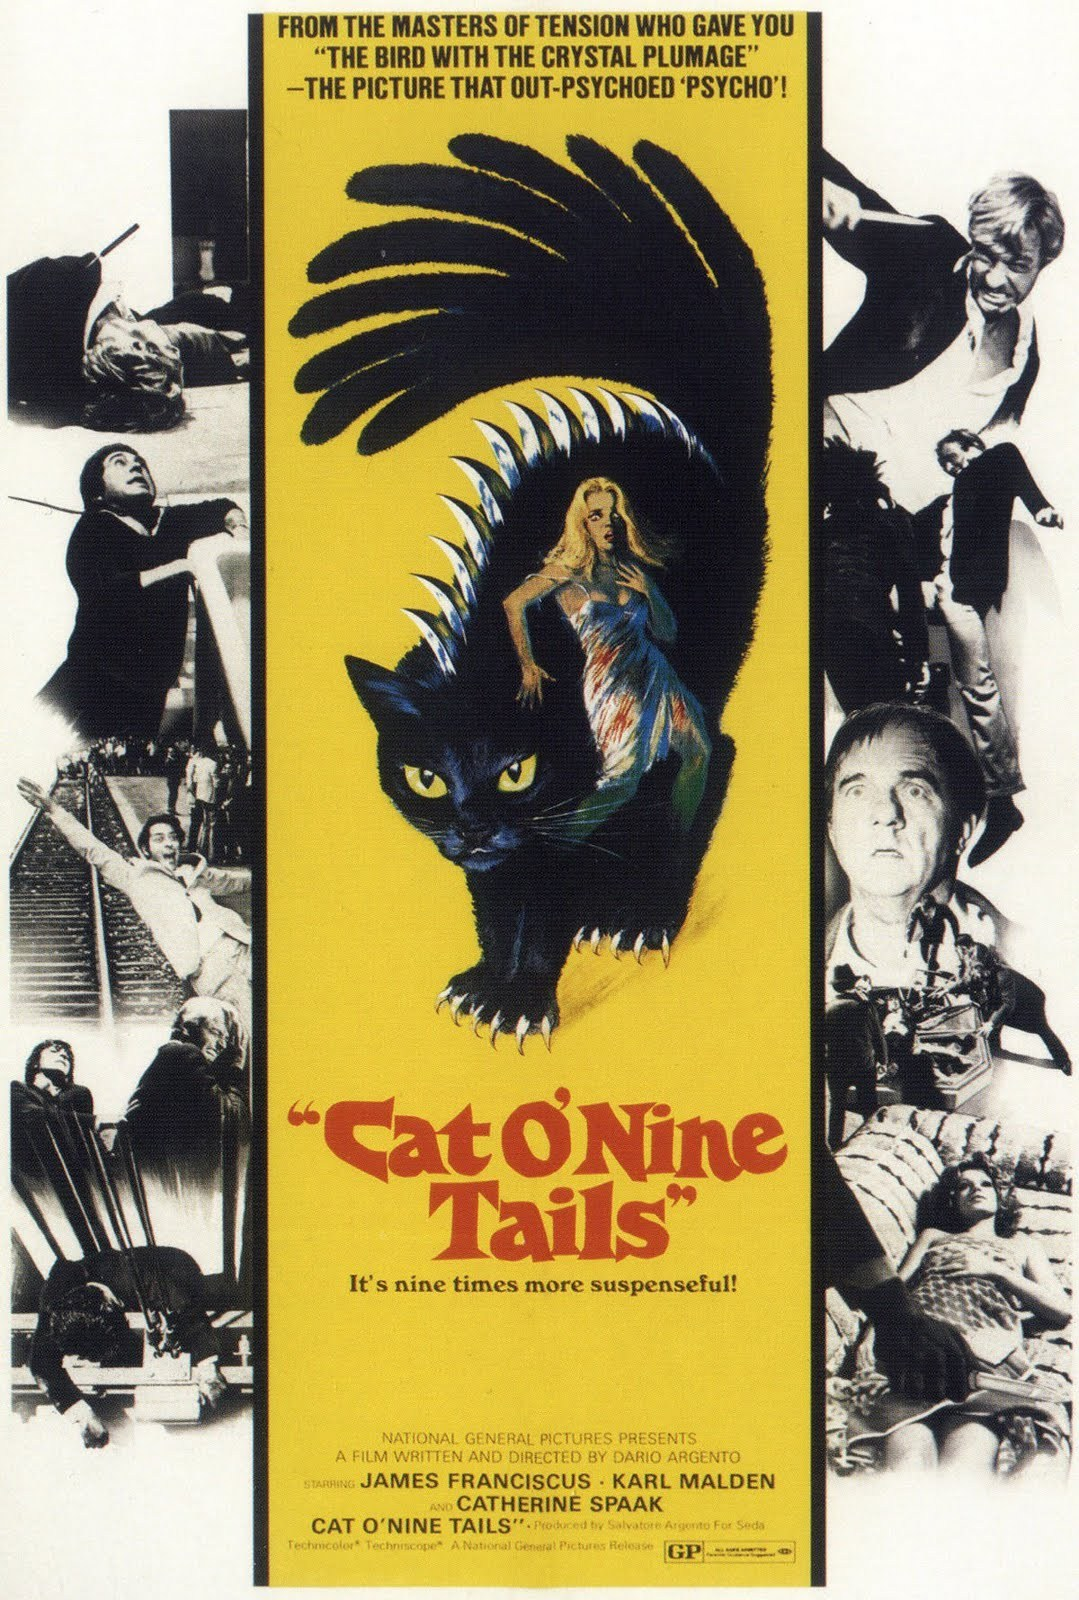 Cat o' Nine Tails (1971) - Directed by: Dario ArgentoStarring: James Francisus, Karl Malden, Catherine Speak, Horst Frank, Rada RassimovRated: NR (Suggested R for Some Violence and Terror)Running Time: 1 h 52 mTMM Score: 3.5 stars out of 5STRENGTHS: Direction, Writing, Subversion of Expectations, Characters, CinematographyWEAKNESSES: Dialogue, Pacing in First Act, Believability (?)